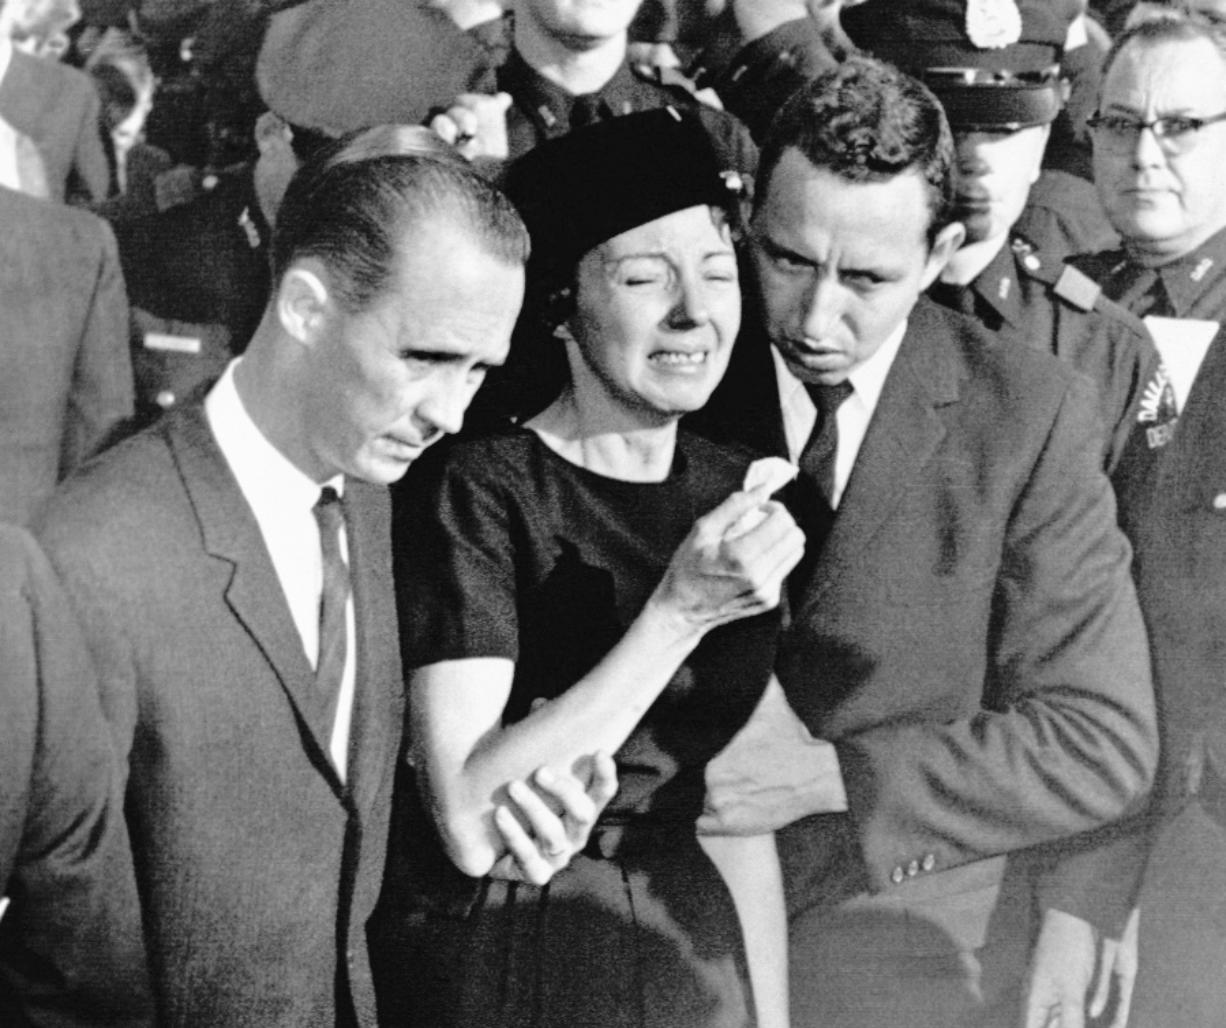 FILE - In this Monday, Nov. 25, 1963, file photo, Marie Tippit, widow of police officer J.D. Tippit who was slain during the search for President John F. Kennedy's assassin, is led weeping from Beckley Hills Baptist Church in Dallas after funeral services for her husband. Tippit who was a 35-year-old mother of three when her husband, Officer J.D. Tippit, was killed on Nov. 22, 1963, has died at age 92. Her son said she died Tuesday, March 2, 2021, at a hospital in the East Texas city of Sulphur Springs after being diagnosed with pneumonia following a positive test for COVID-19.